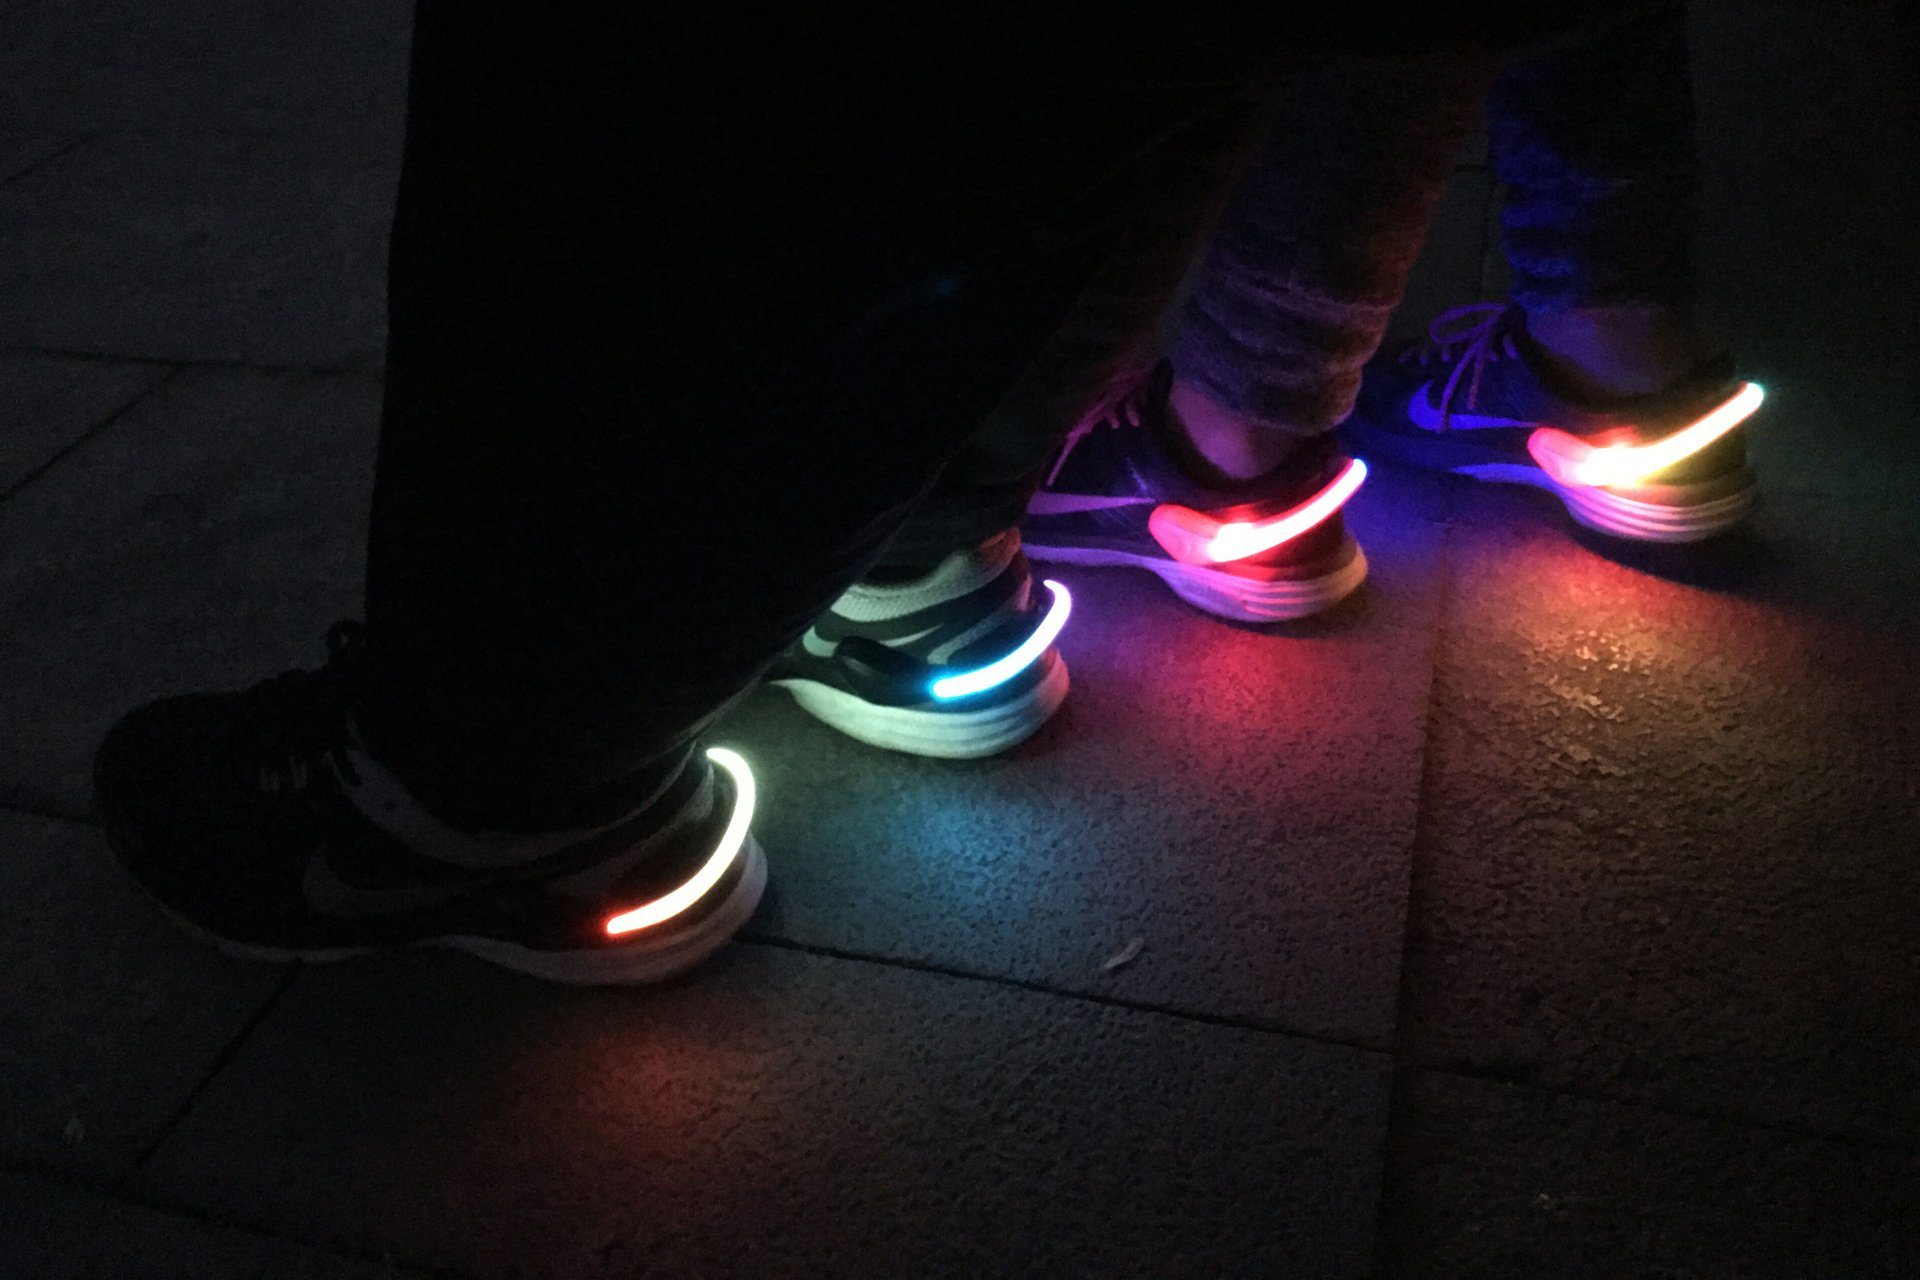 LED Shoe Clip Lights Clip Safety Night High Visibility Running Gear for Joggers Bikers Kids Women Men 2pcs